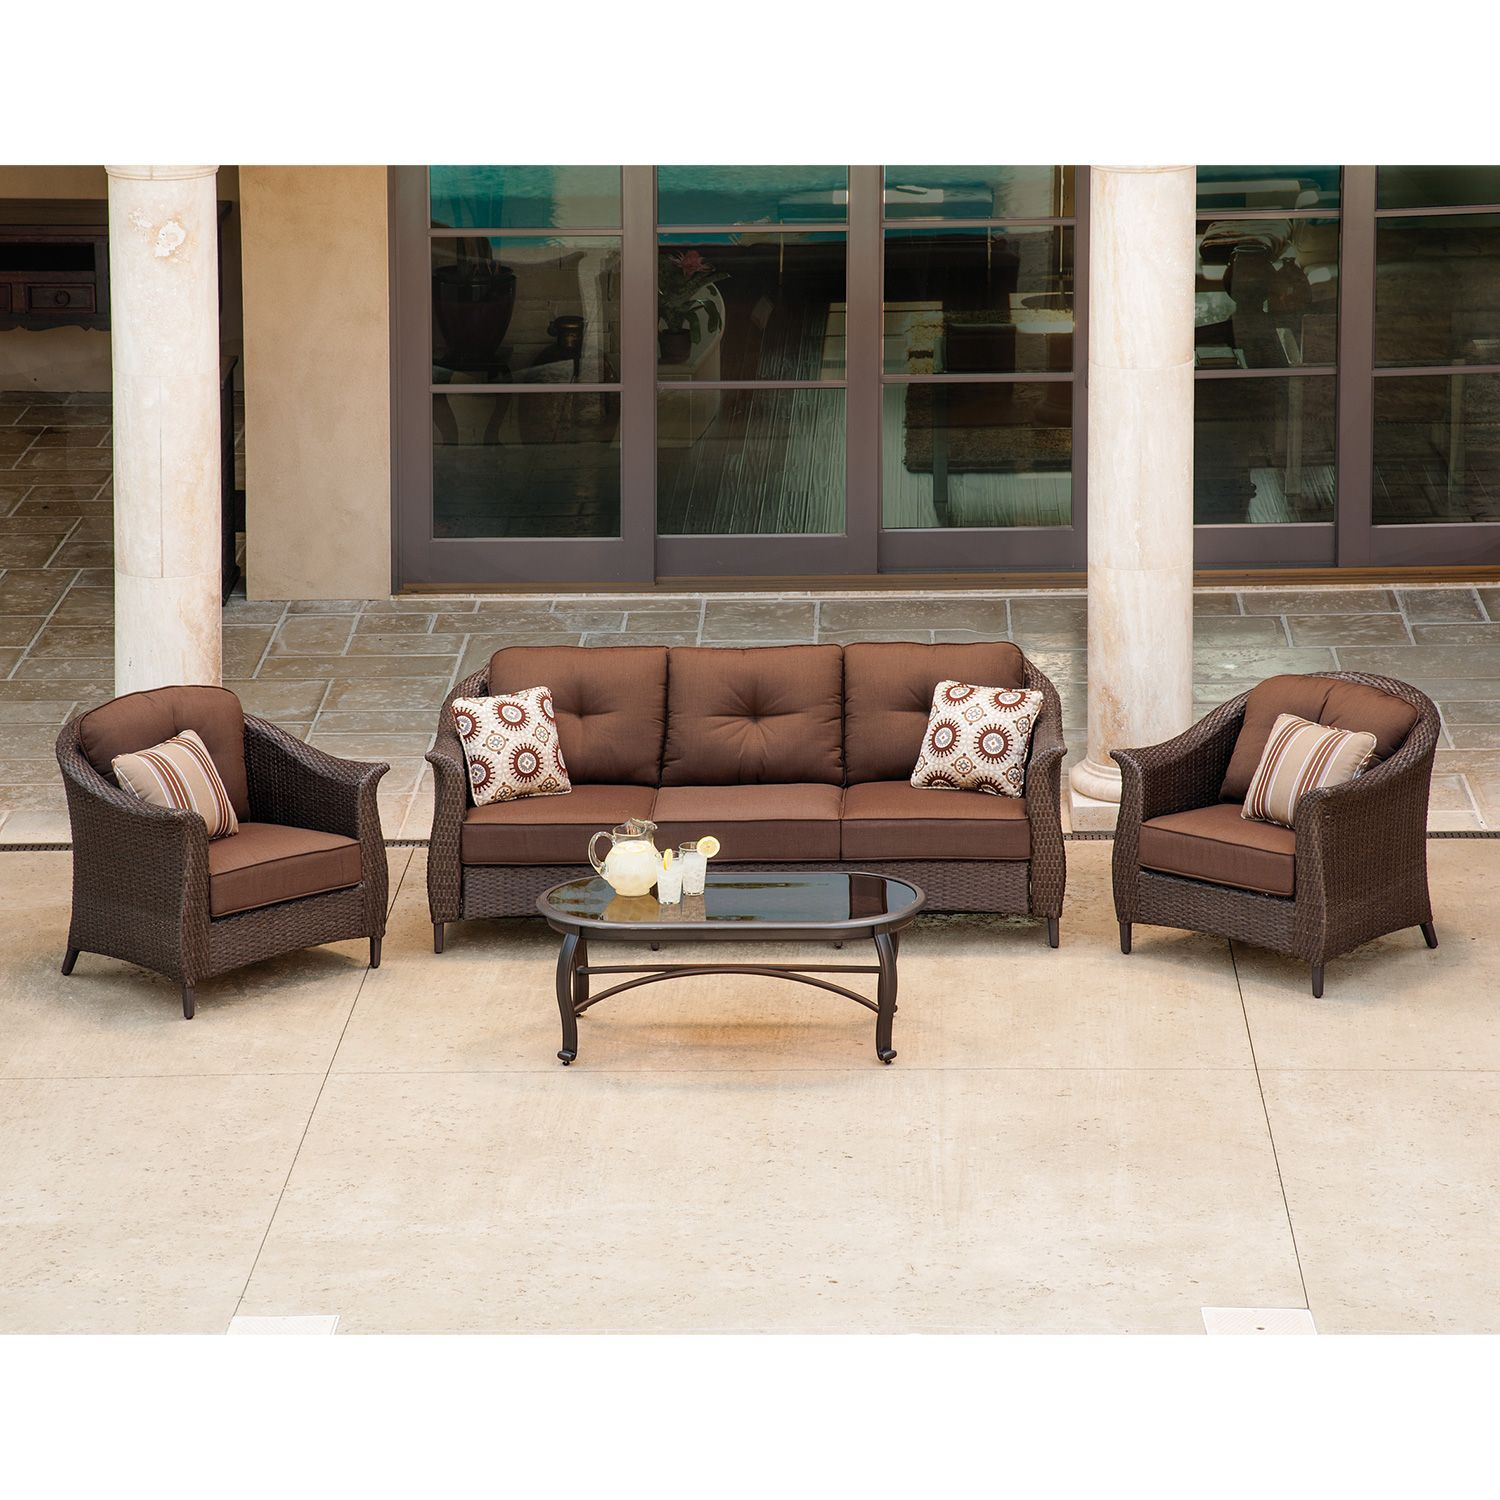 By The Pool$999 Lazboy Outdoor Eva 4 Pcdeep Seating Set Brilliant La Z Boy Dining Room Sets Inspiration